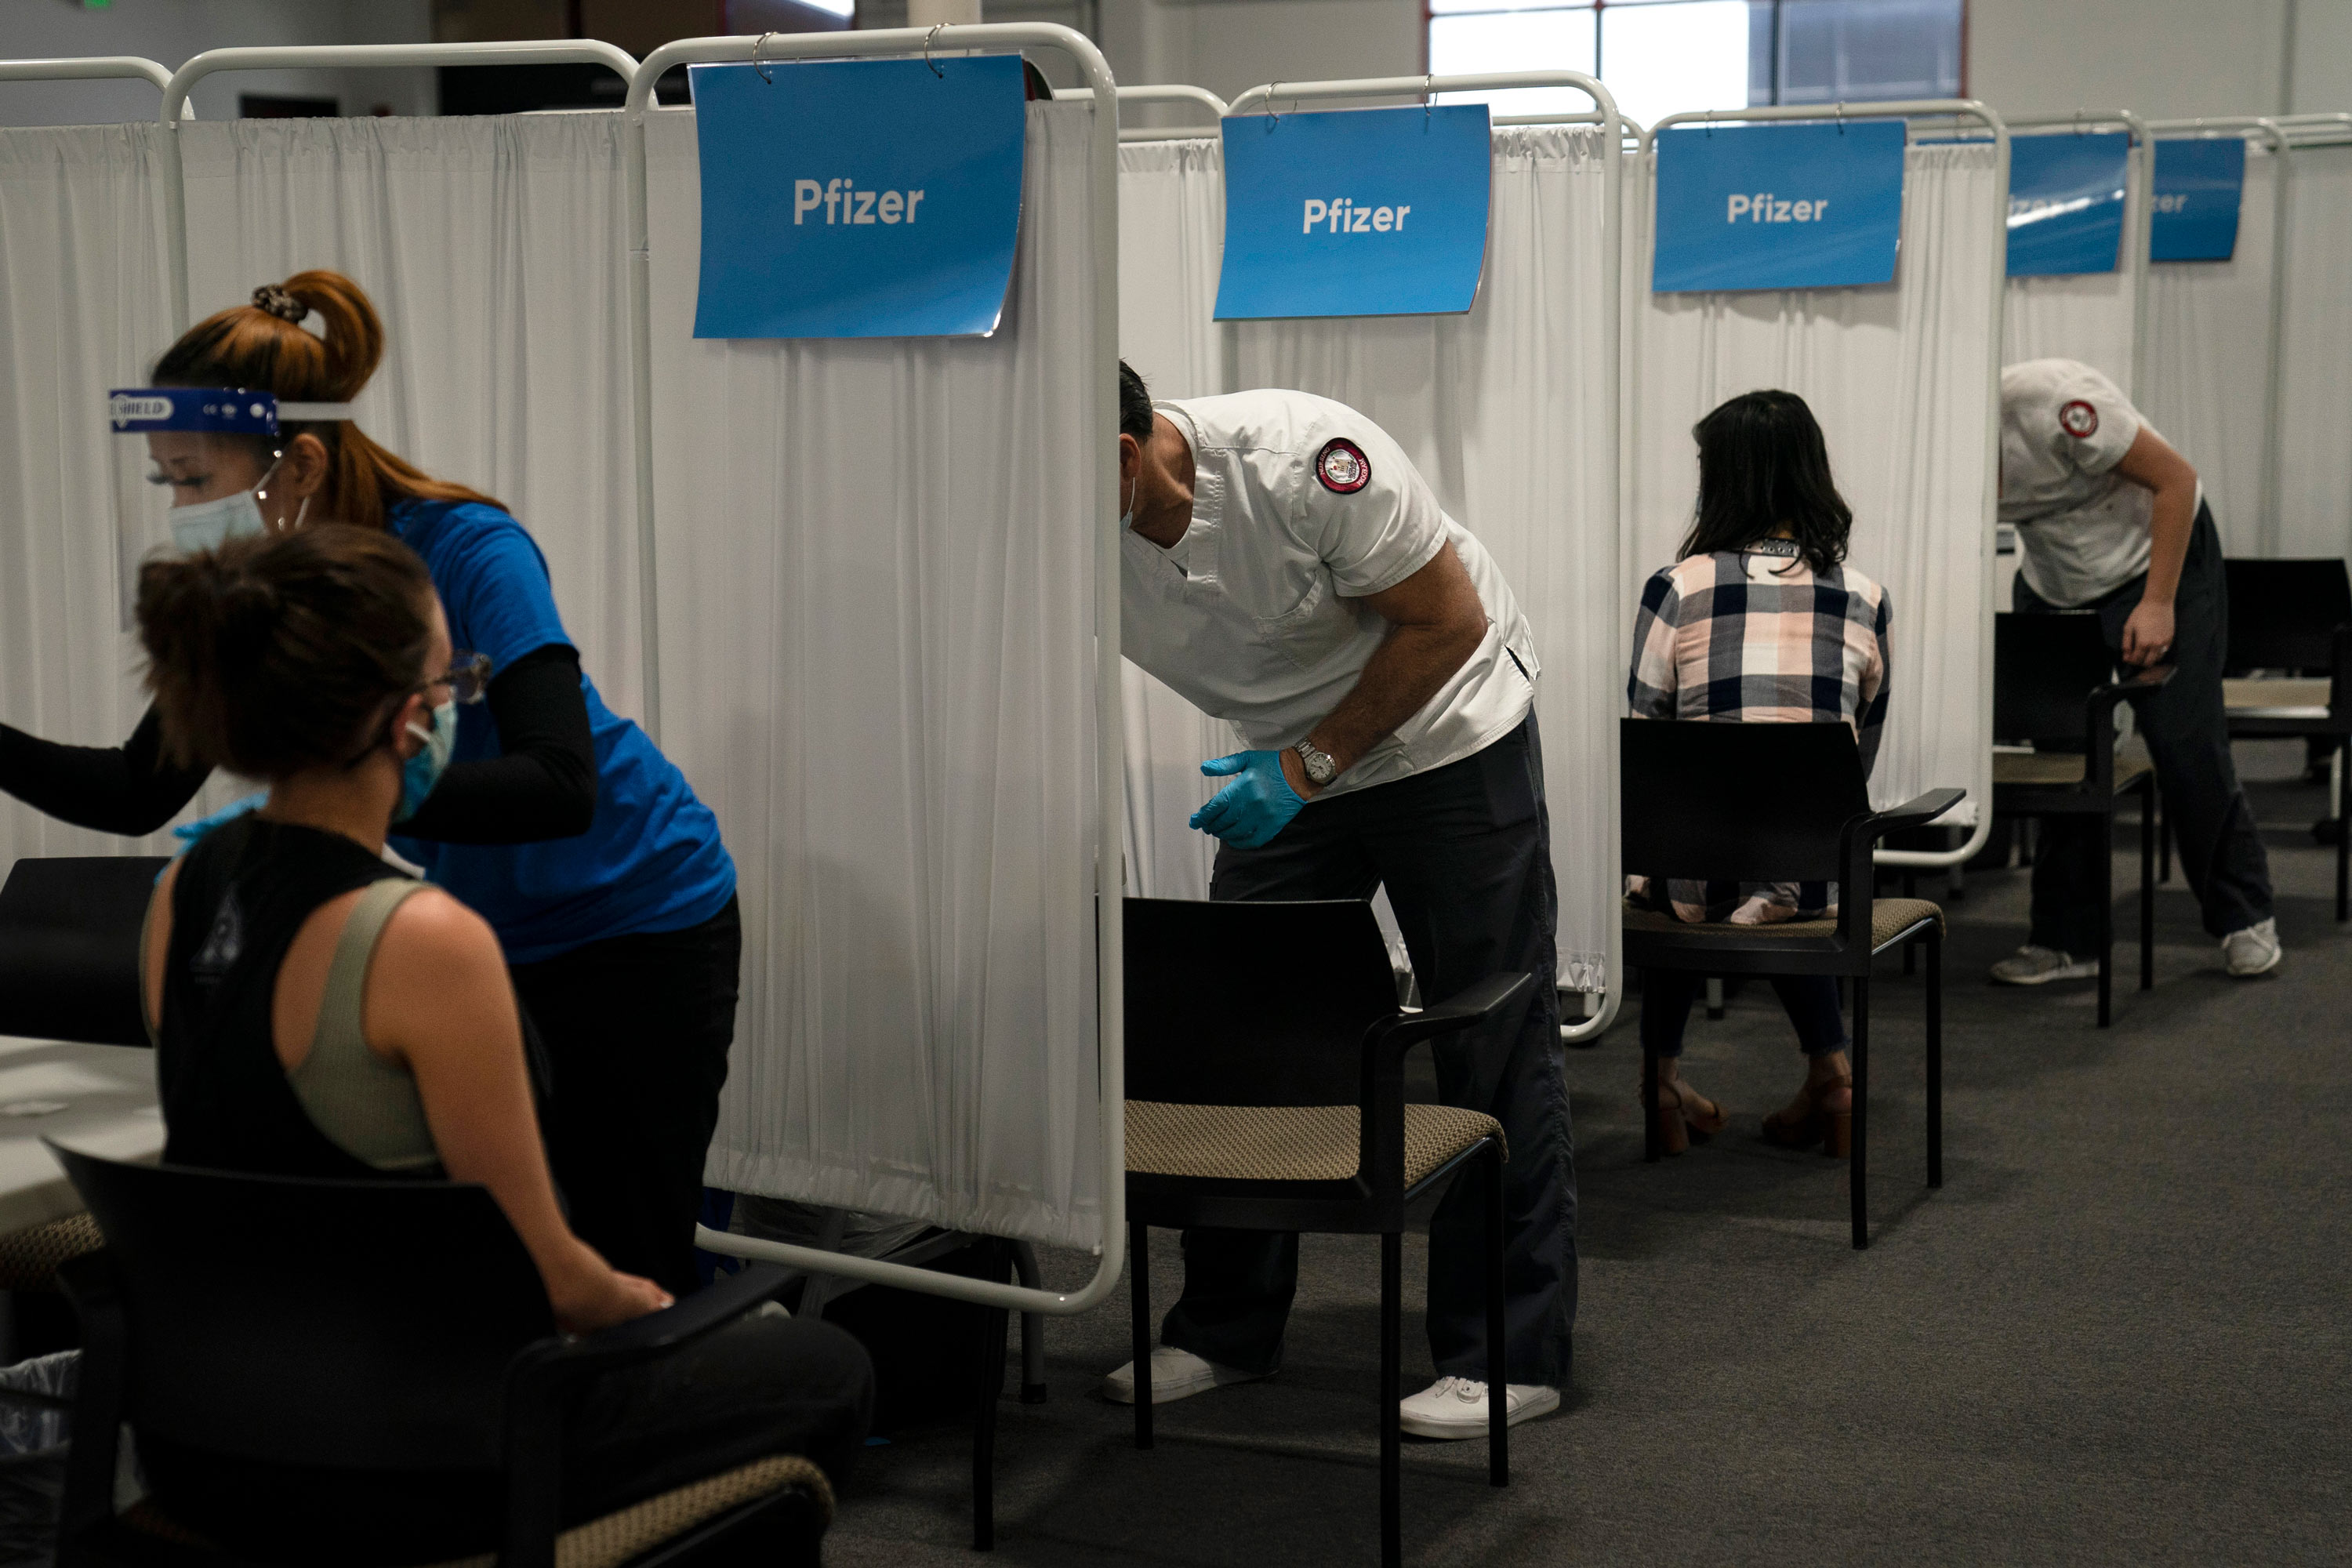 Student nurse Dario Gomez, center, disinfects a chair after administering the Pfizer COVID-19 vaccine to a patient at Providence Edwards Lifesciences vaccination site in Santa Ana, California, on May 21.